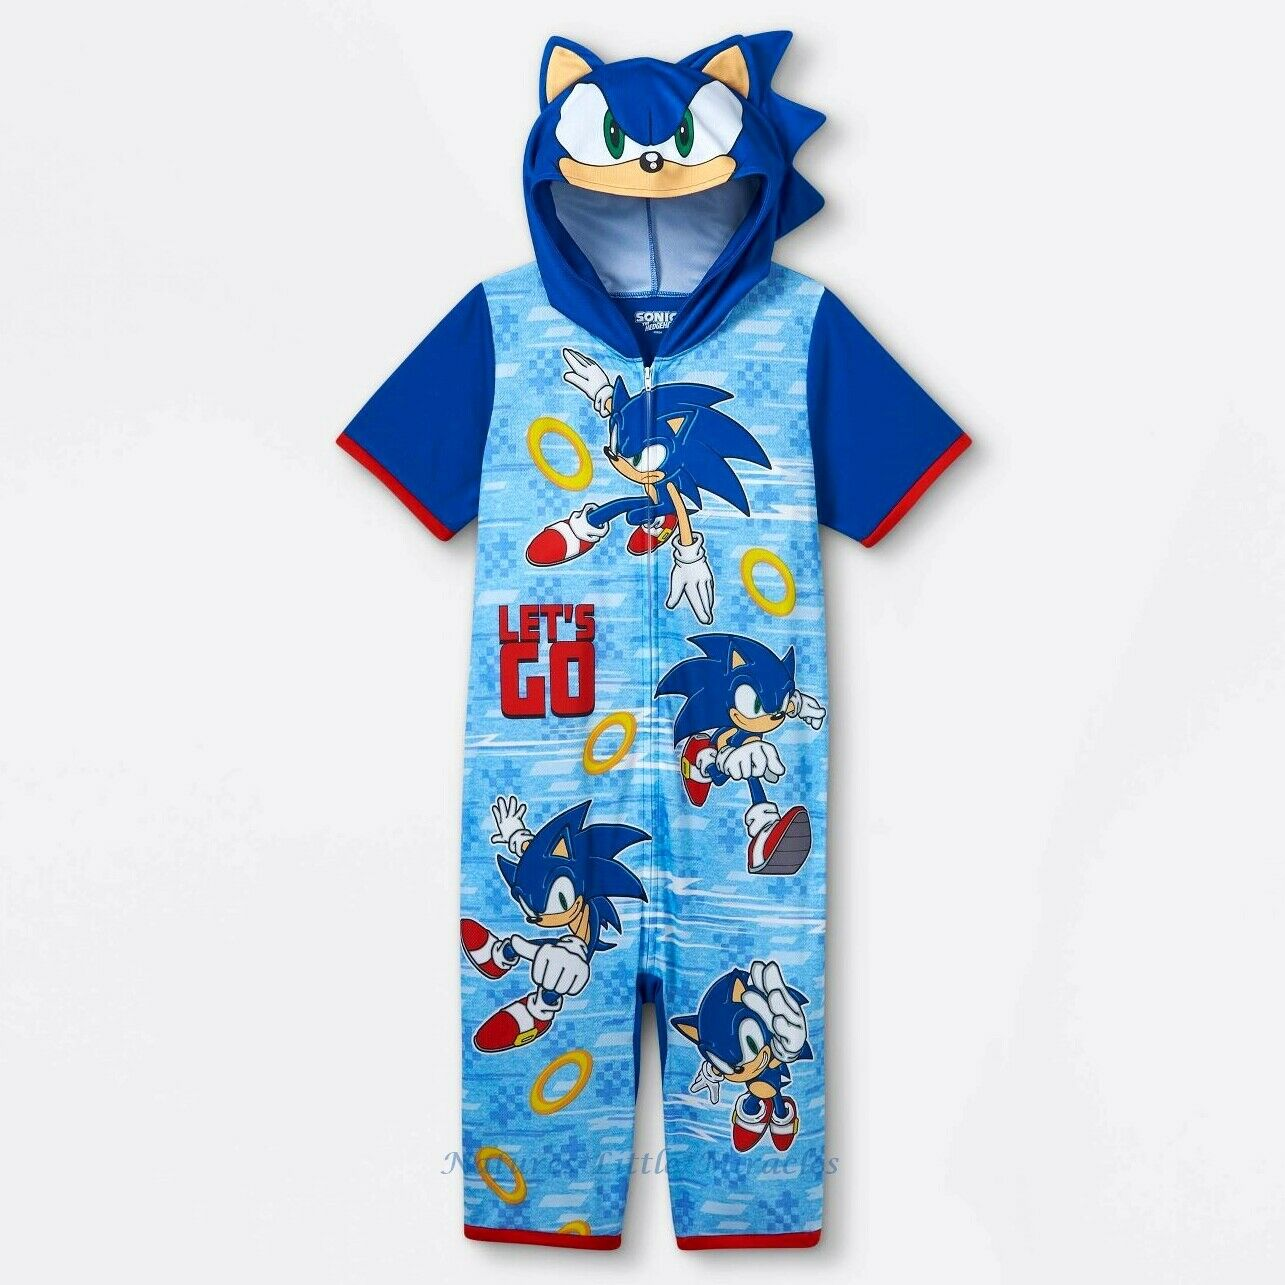 Sonic The Hedgehog Pajamas Boy Hoodie Union Suit One Piece Costume Size XS-L NWT